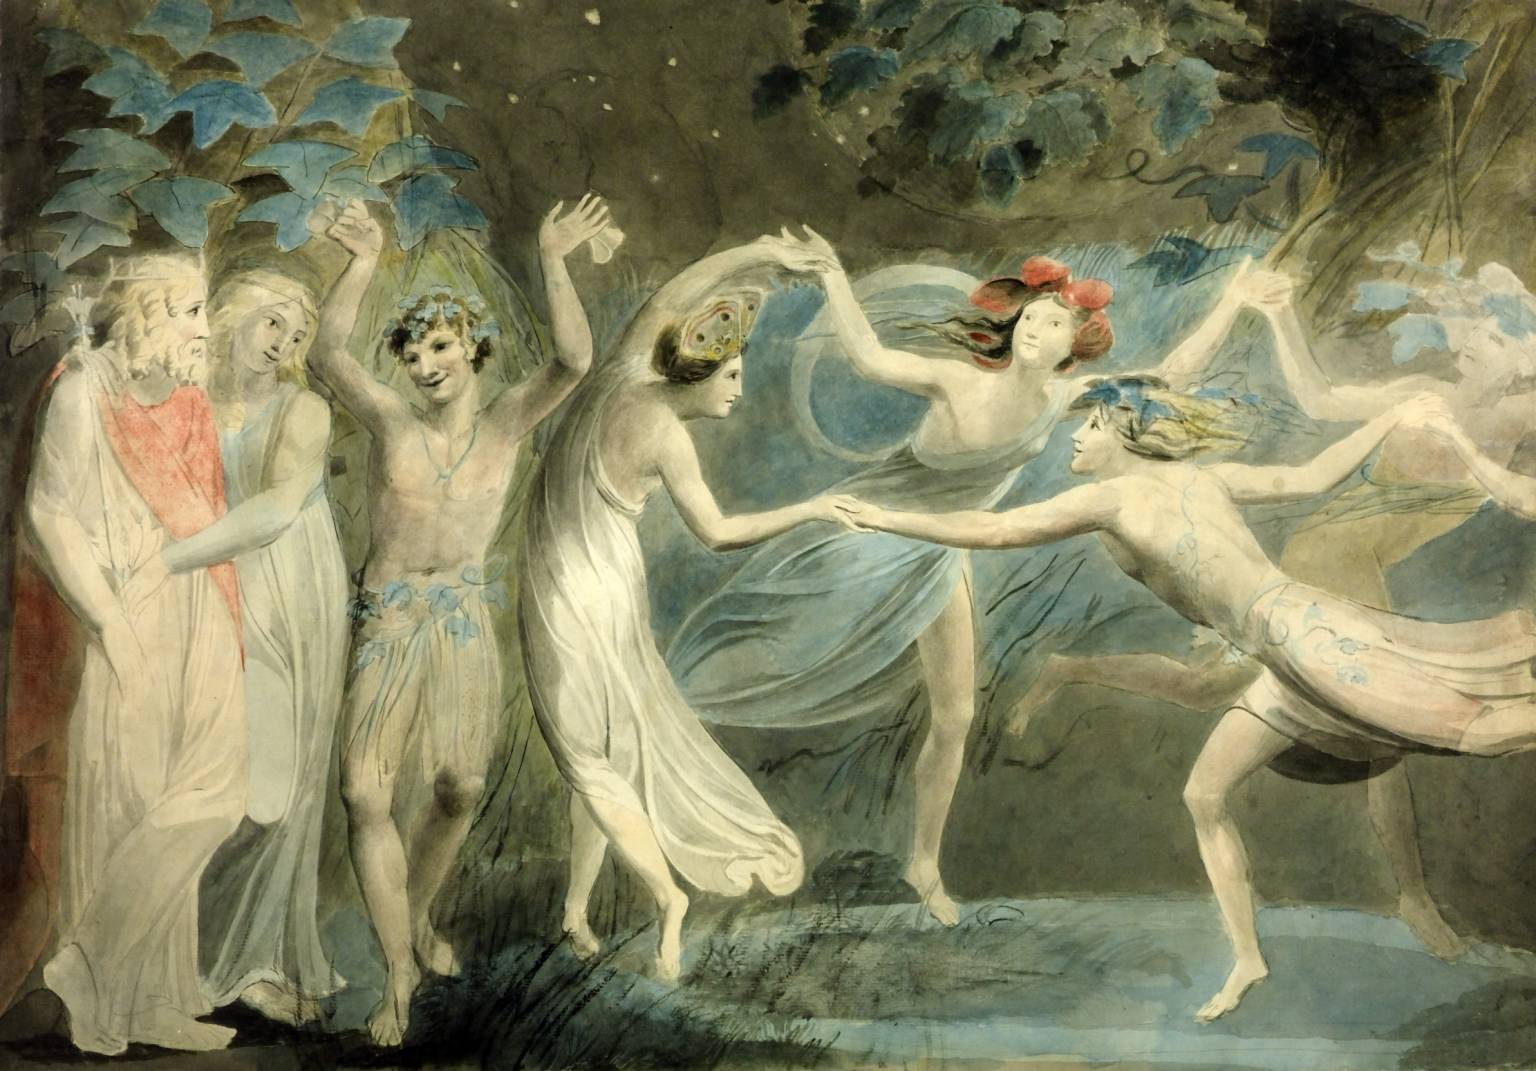 Oberon, Titania and Puck with Fairies Dancing circa 1786 William Blake